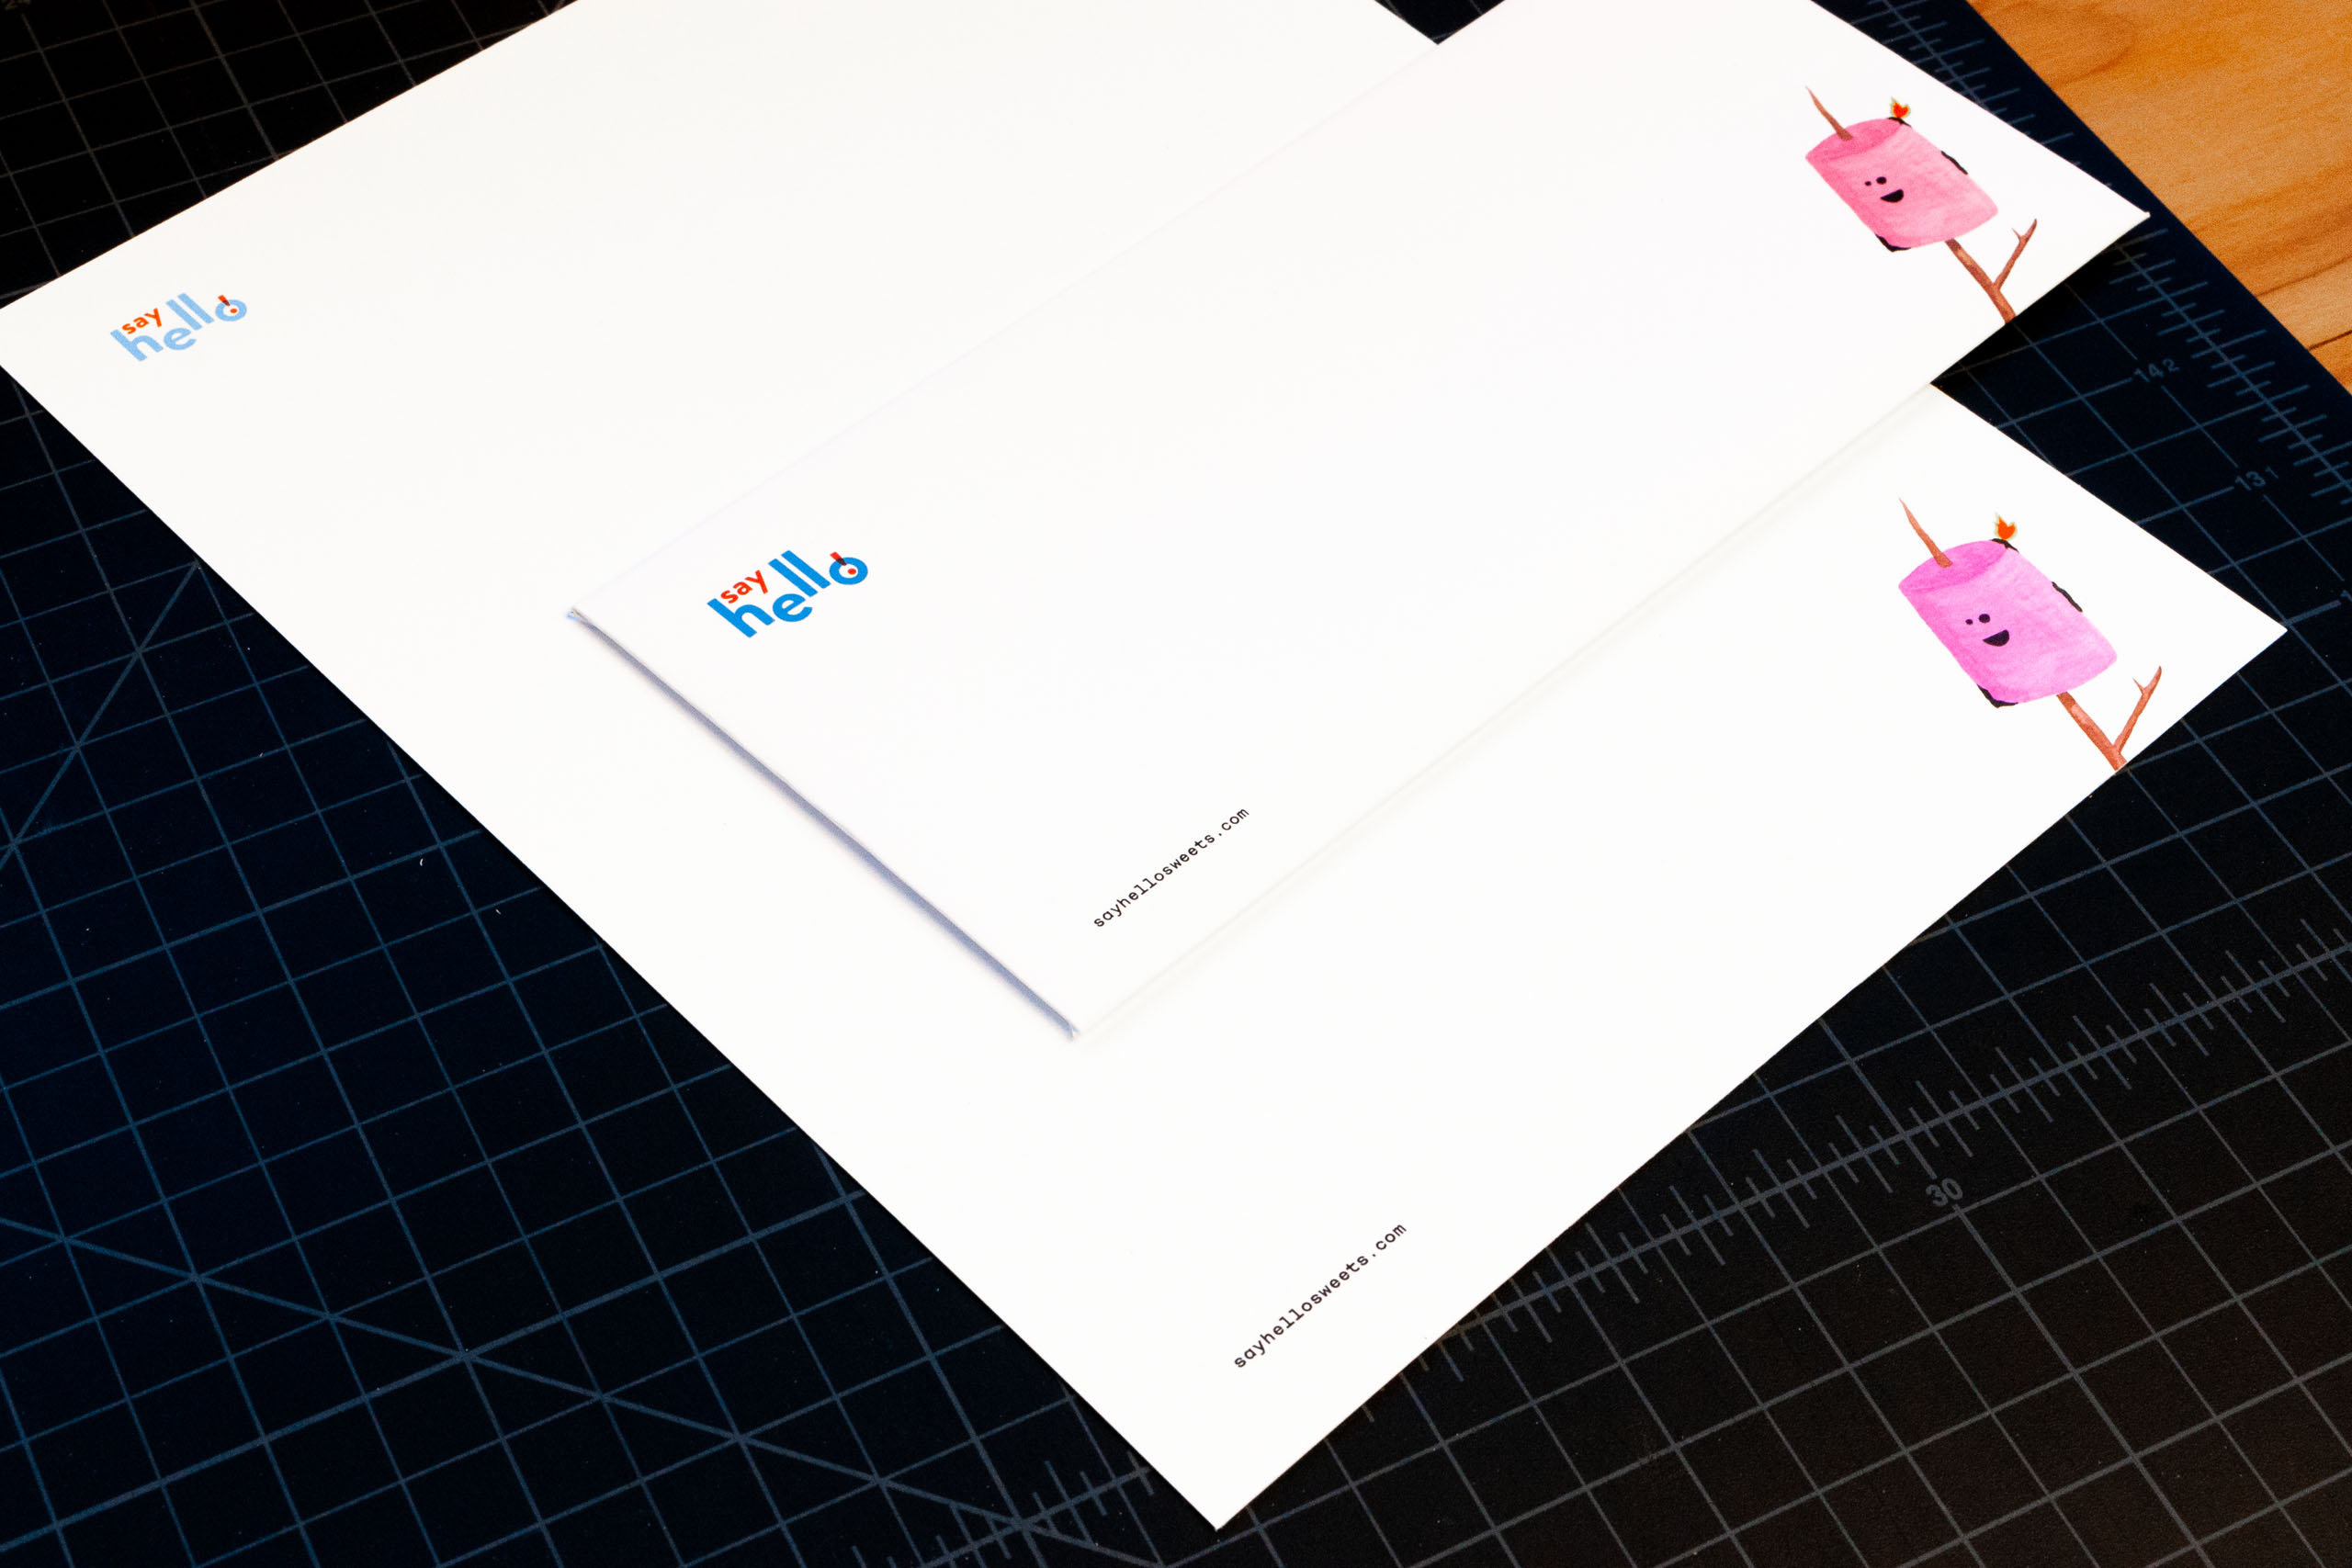 Say Hello business card and letterhead featuring logo in the top left corner looking down to the bottom right corner to see a toasted marshmallow illustration — by Yagnyuk.